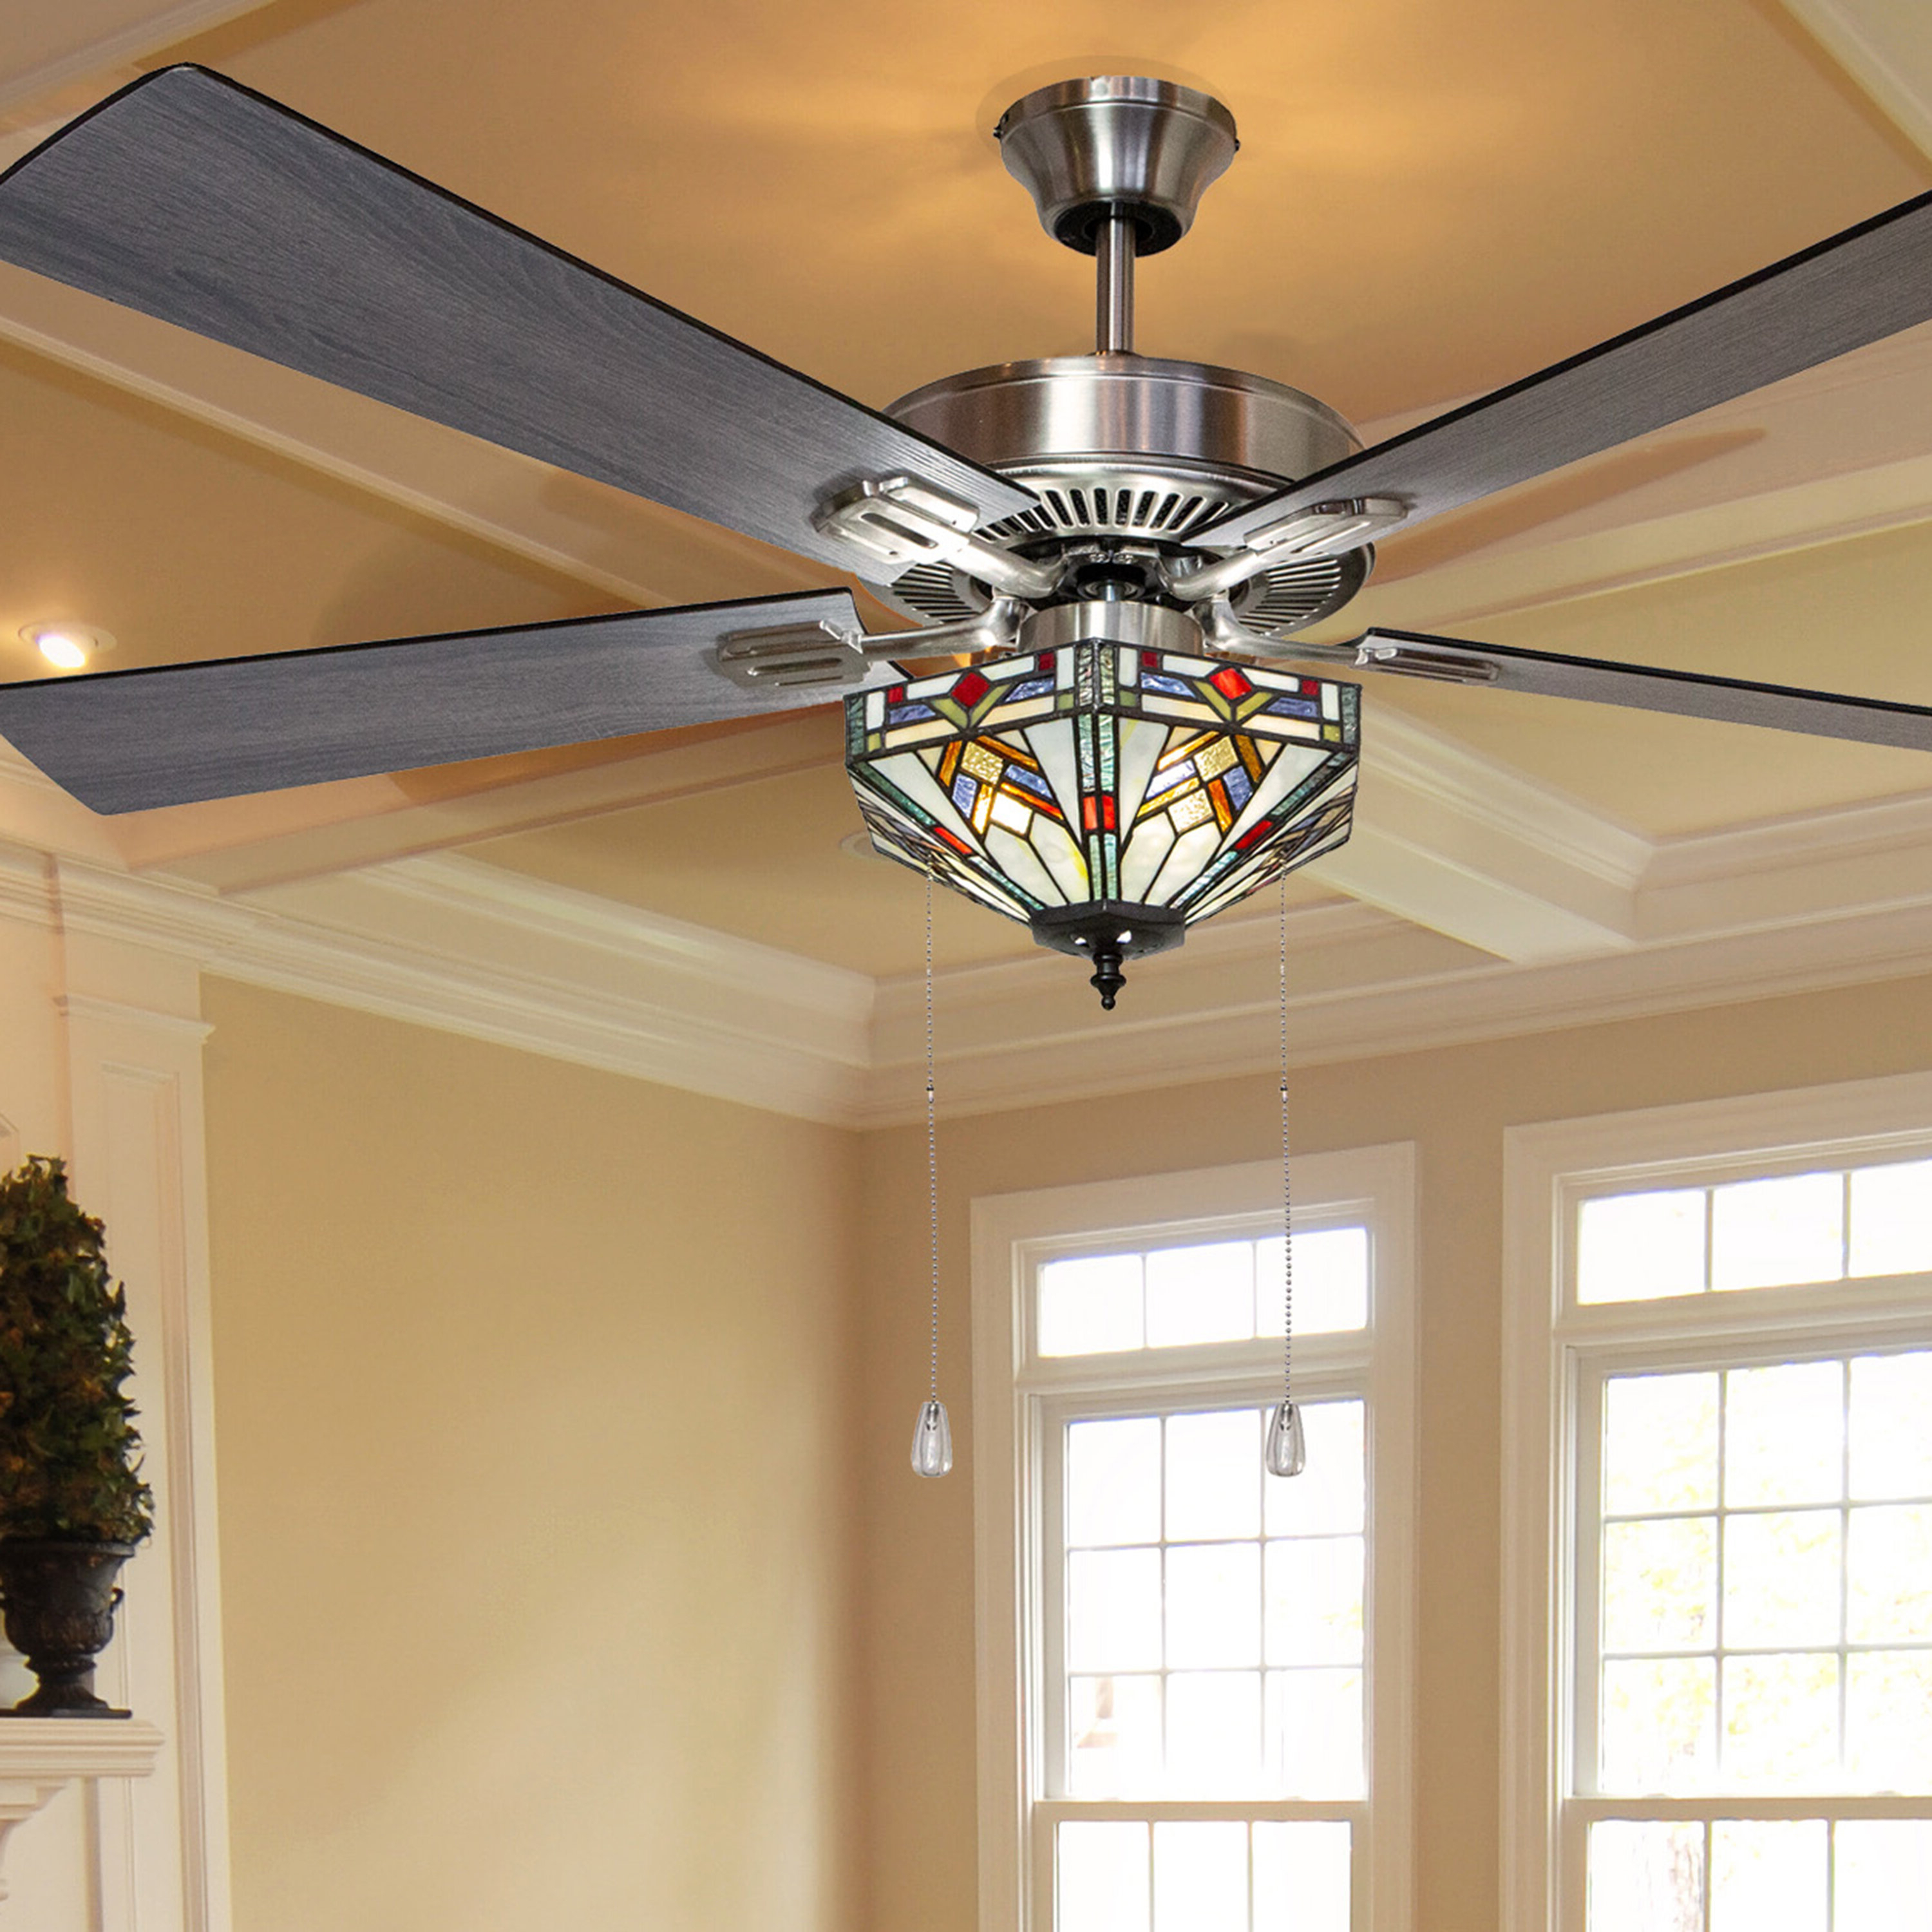 """52"""" Londono Bungalow Mission Glass 5 Blade Ceiling Fan With Remote, Light Kit Included With Regard To Most Recently Released Fredericksen 5 Blade Ceiling Fans (View 3 of 20)"""